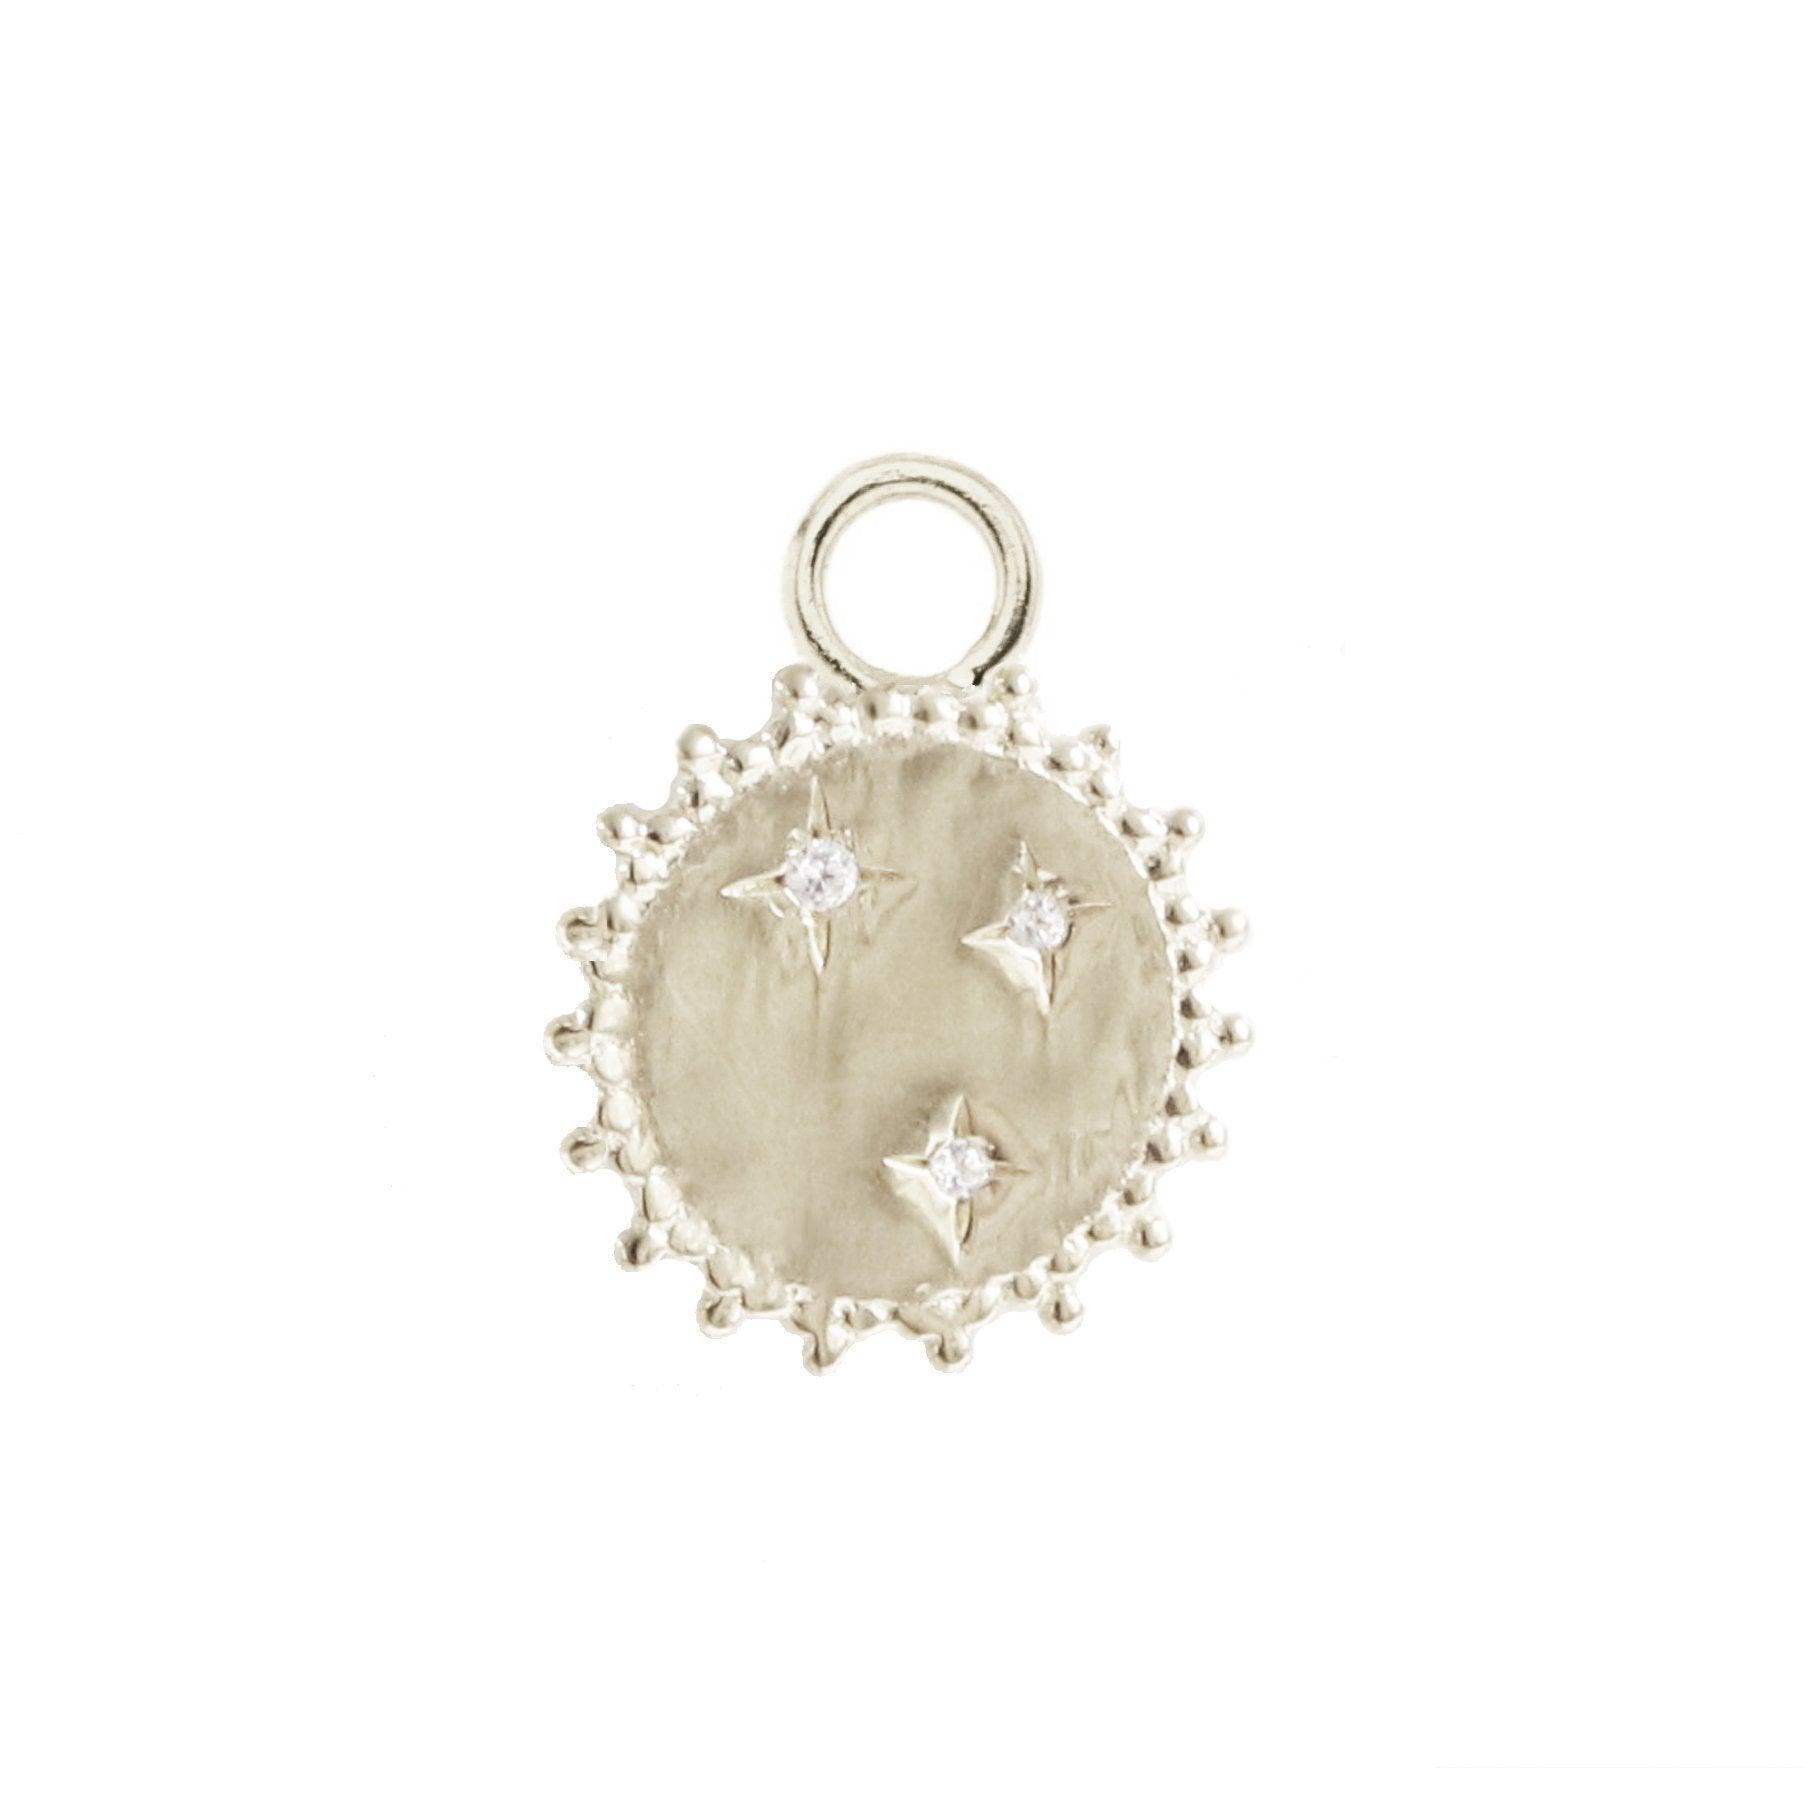 BELIEVE SOLEIL STAR ICON - CUBIC ZIRCONIA & SILVER - SO PRETTY CARA COTTER